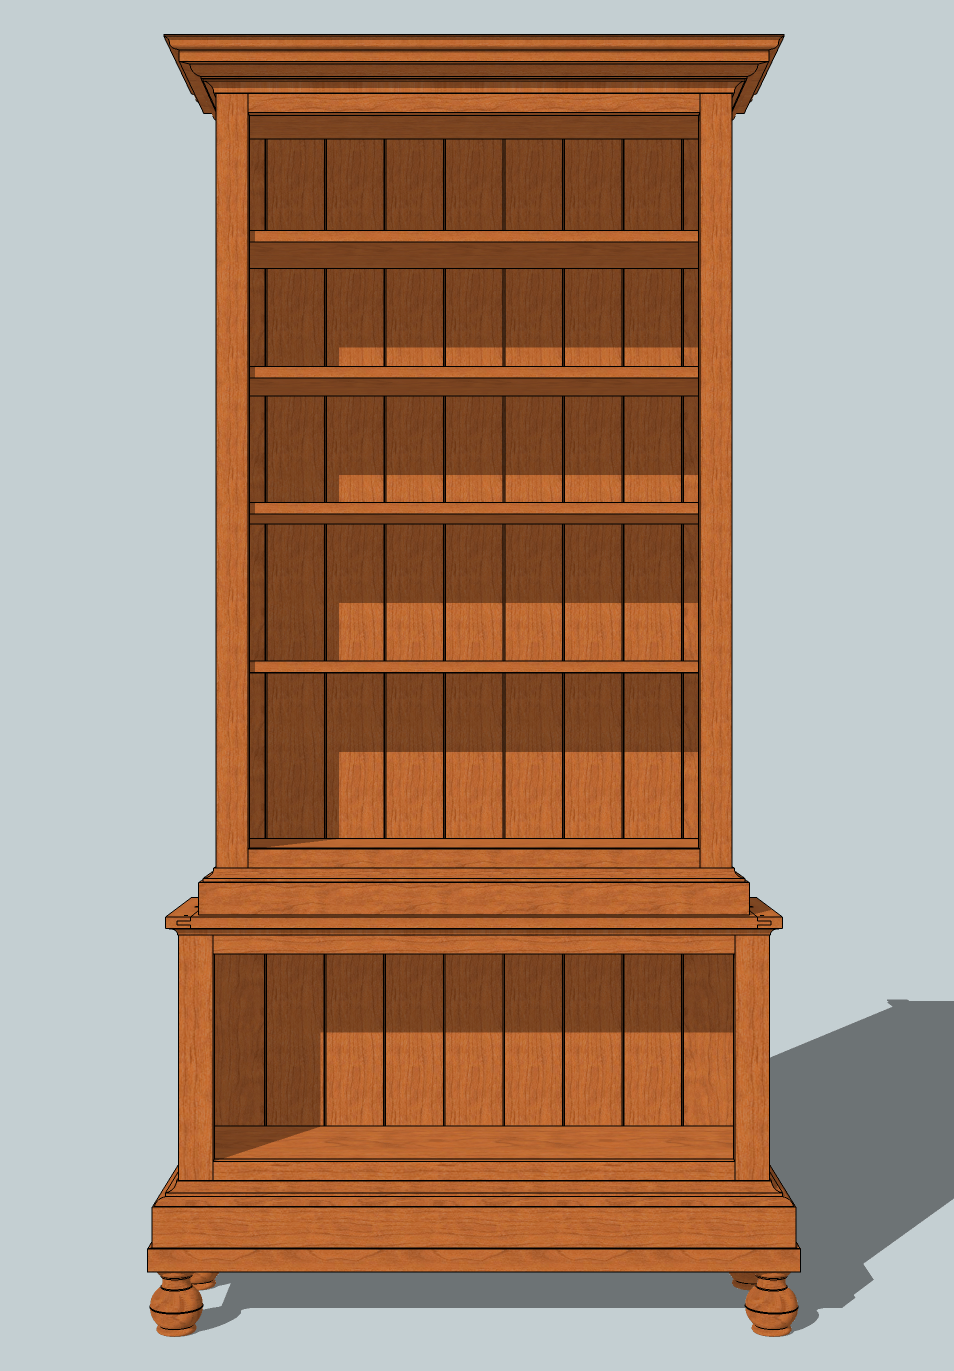 Woodwork Bookshelf Blueprint Plans Pdf Plans